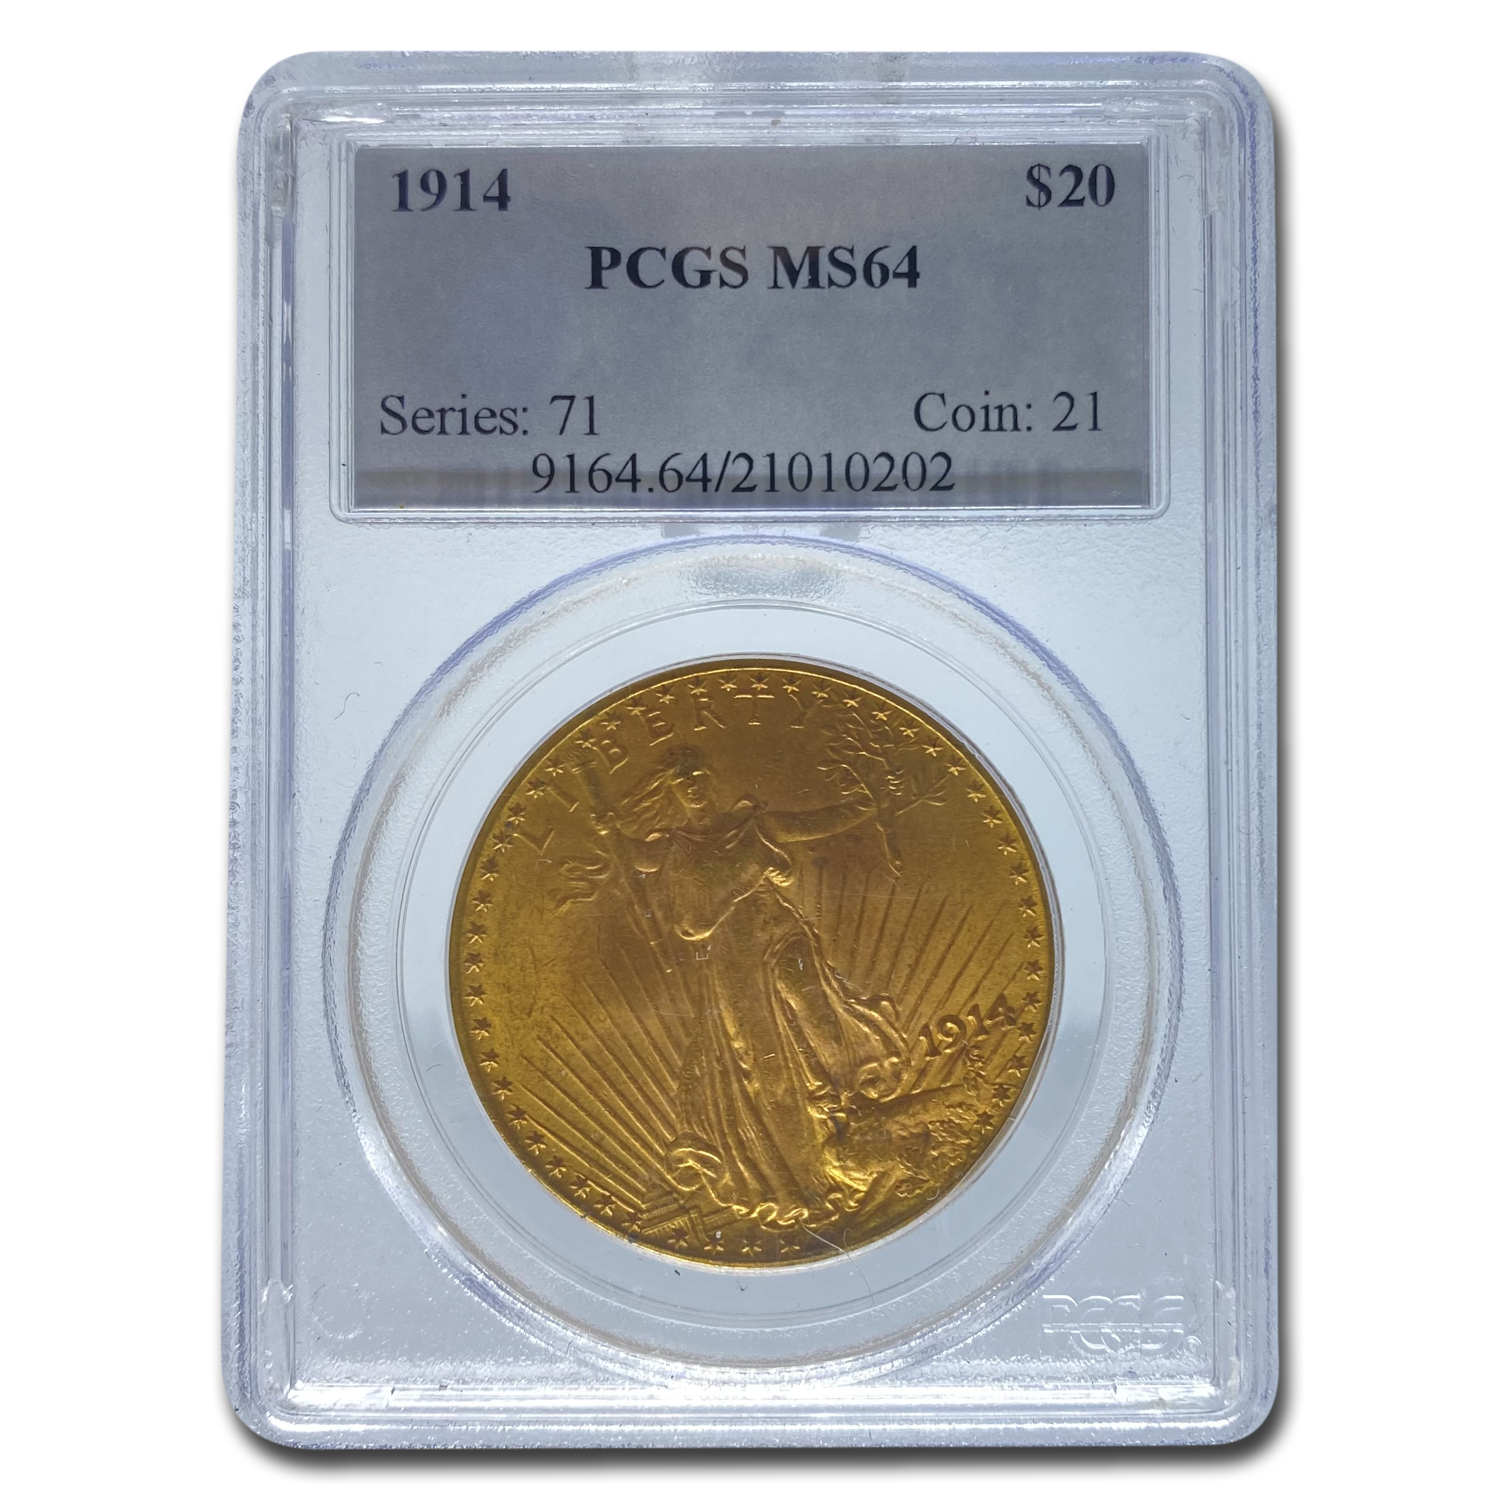 1914 $20 St. Gaudens Gold Double Eagle MS-64 PCGS